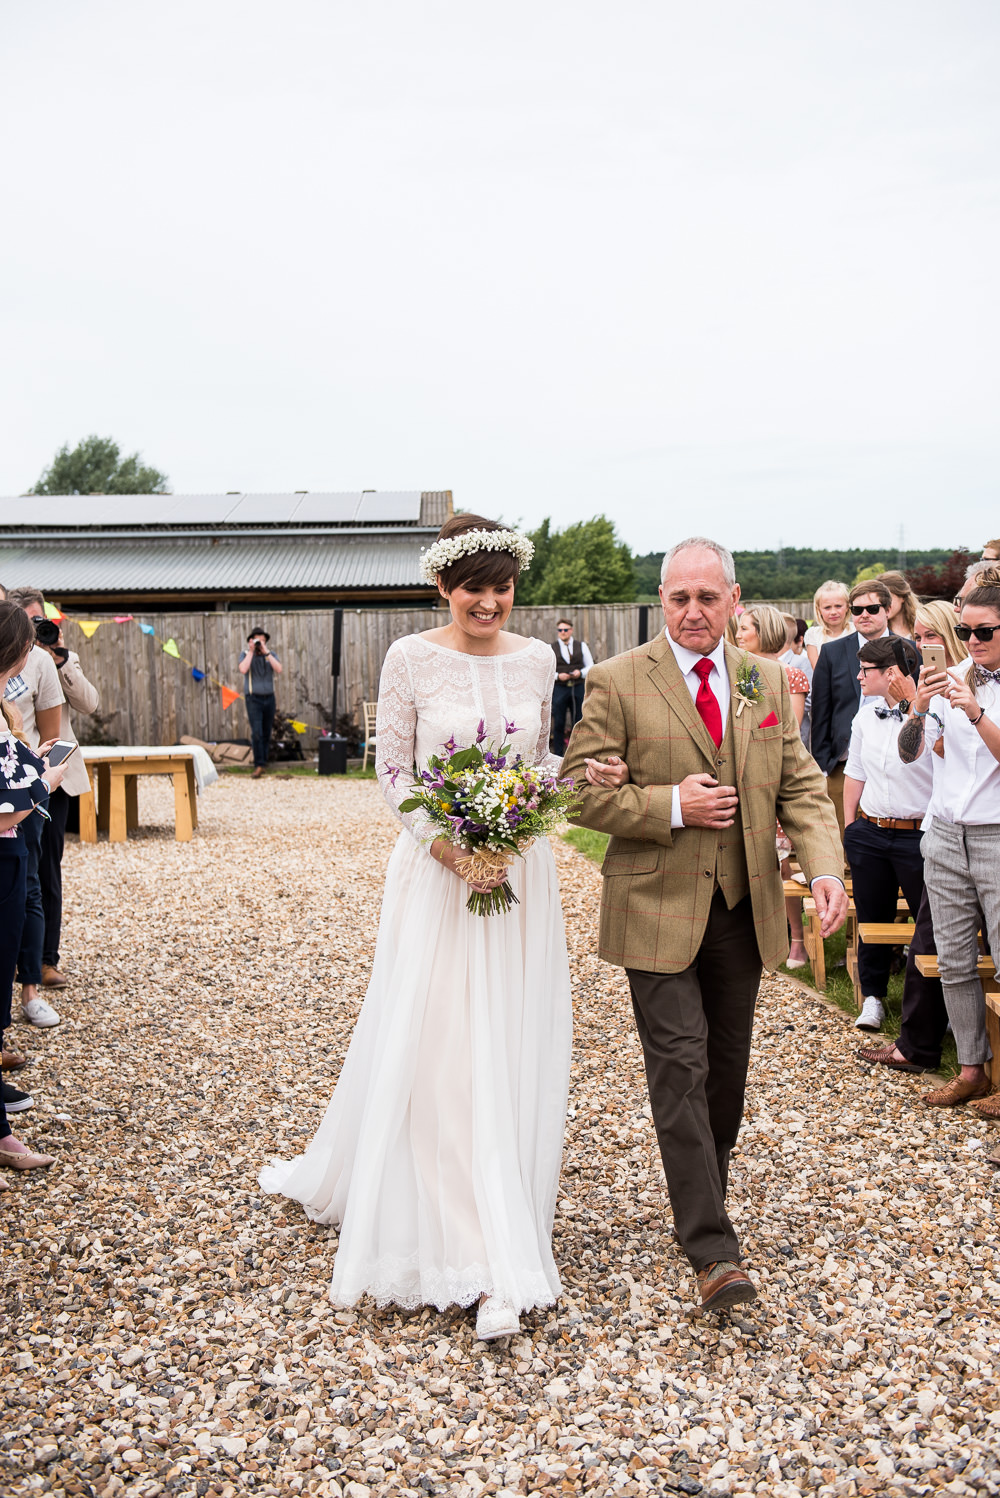 Bride Bridal Long Sleeve Lace Dress Lace Tweed Suit Gypsophila Crown Wildflower Bouquet Inkersall Grange Farm Wedding Jessica Grace Photography